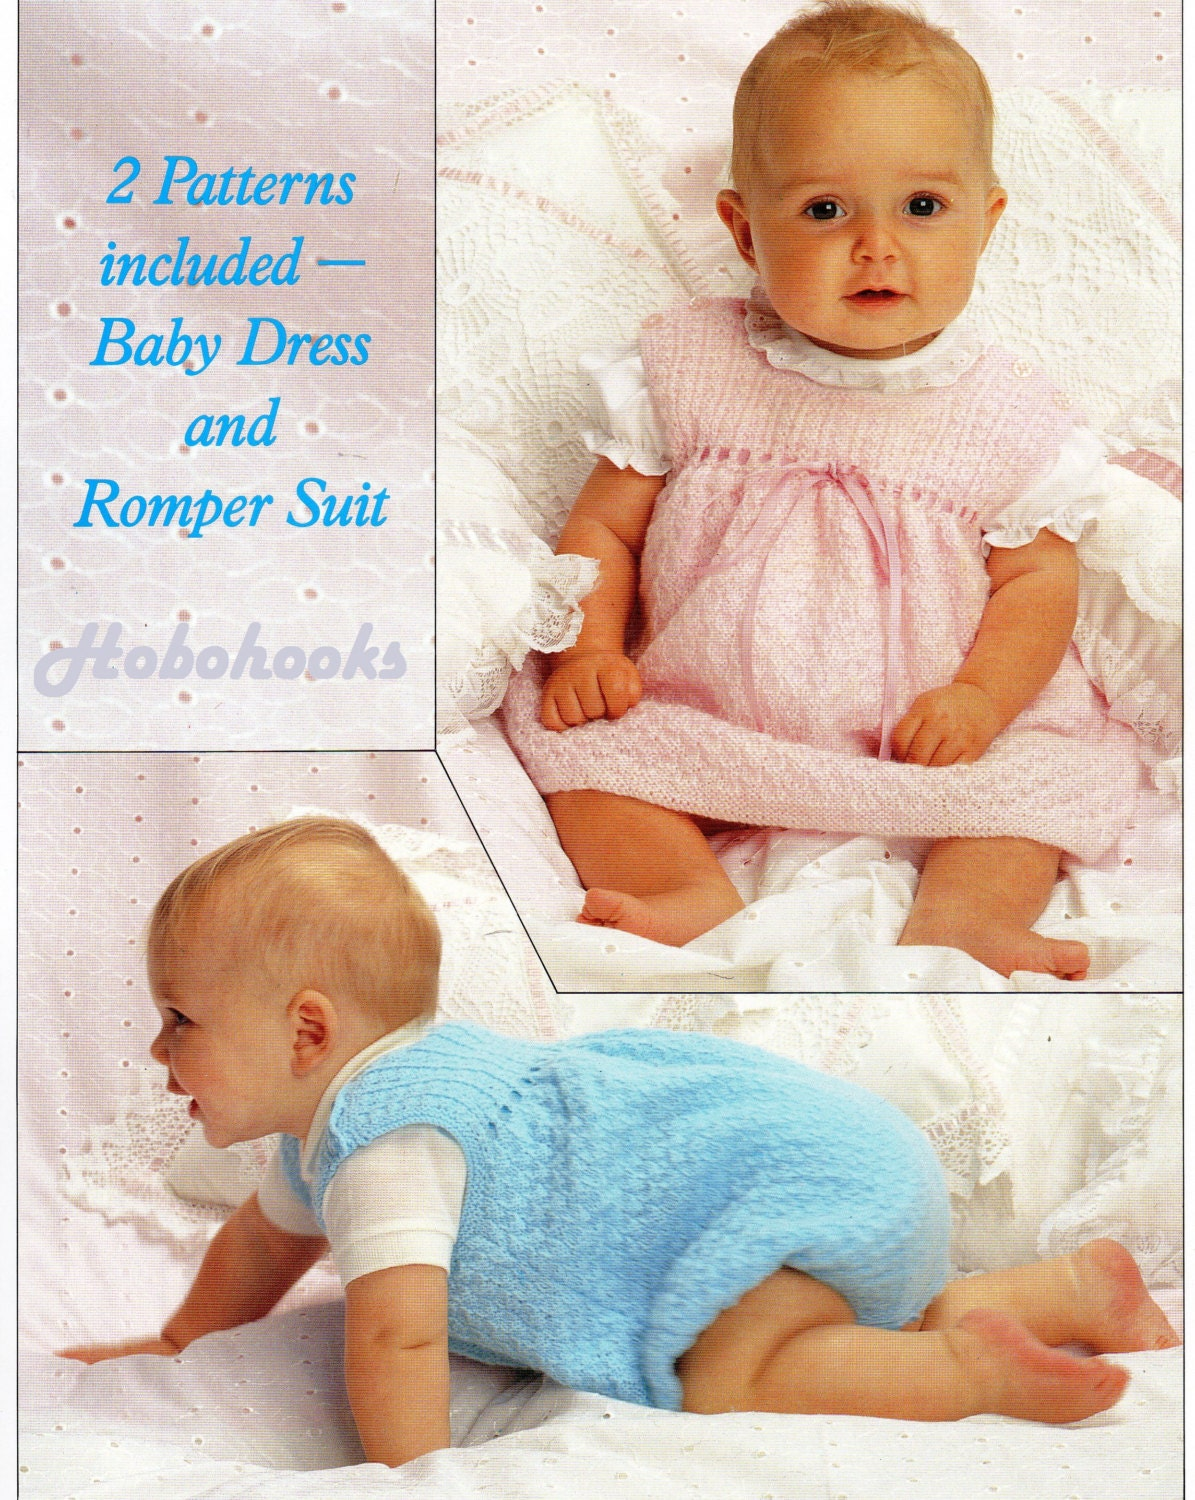 Baby knitting pattern baby dress rompers pinafore romper suit